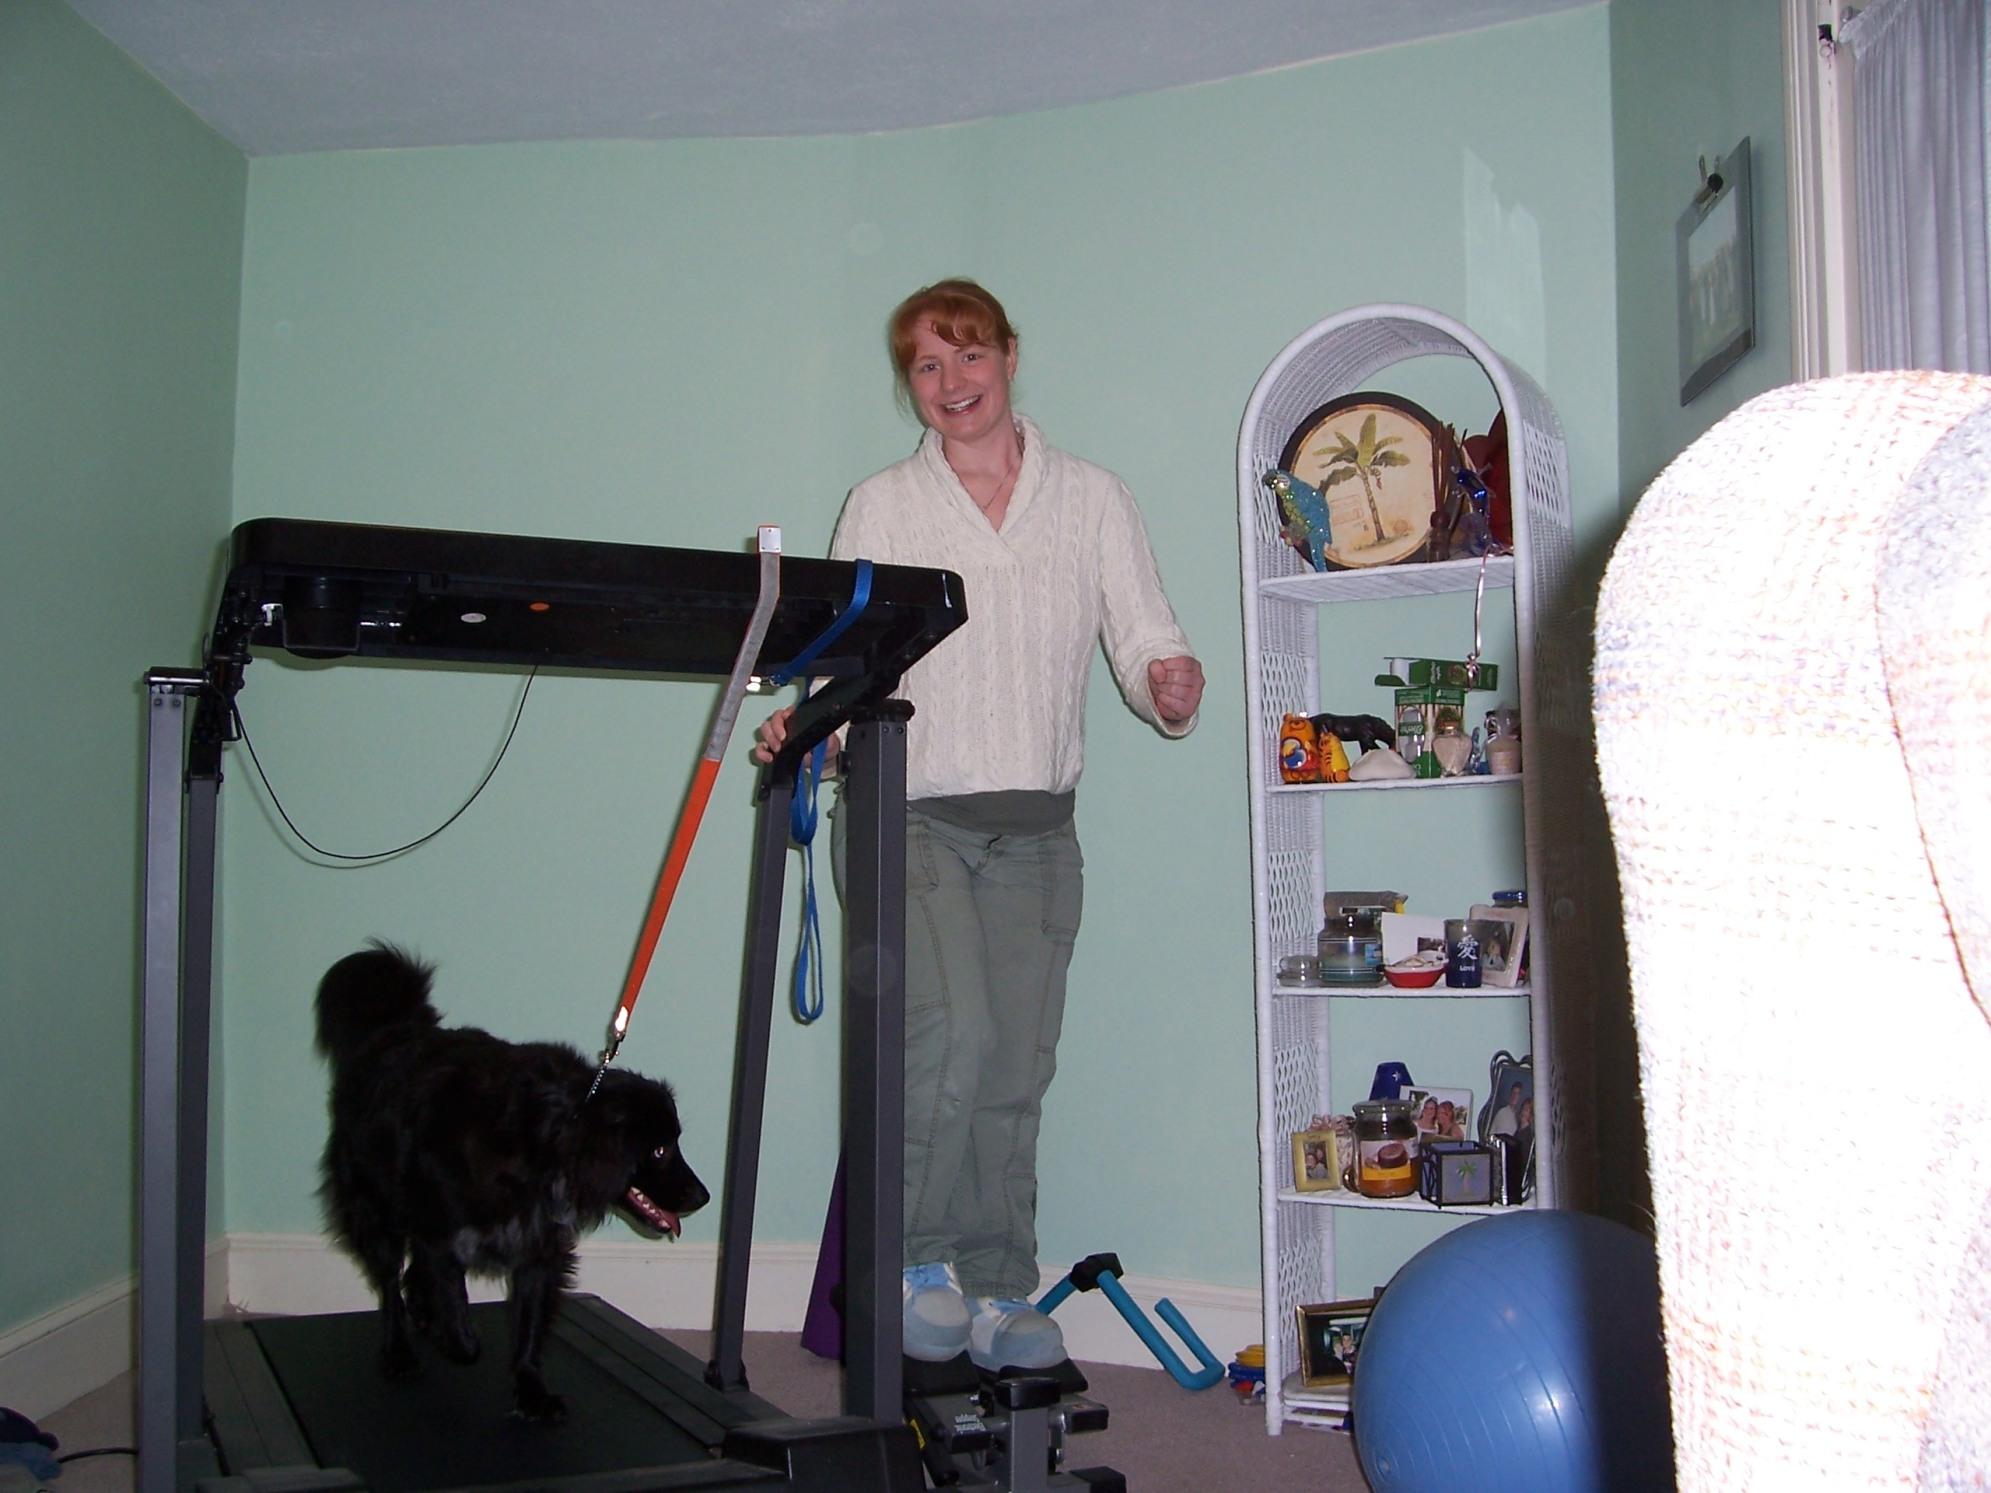 Working out withMom